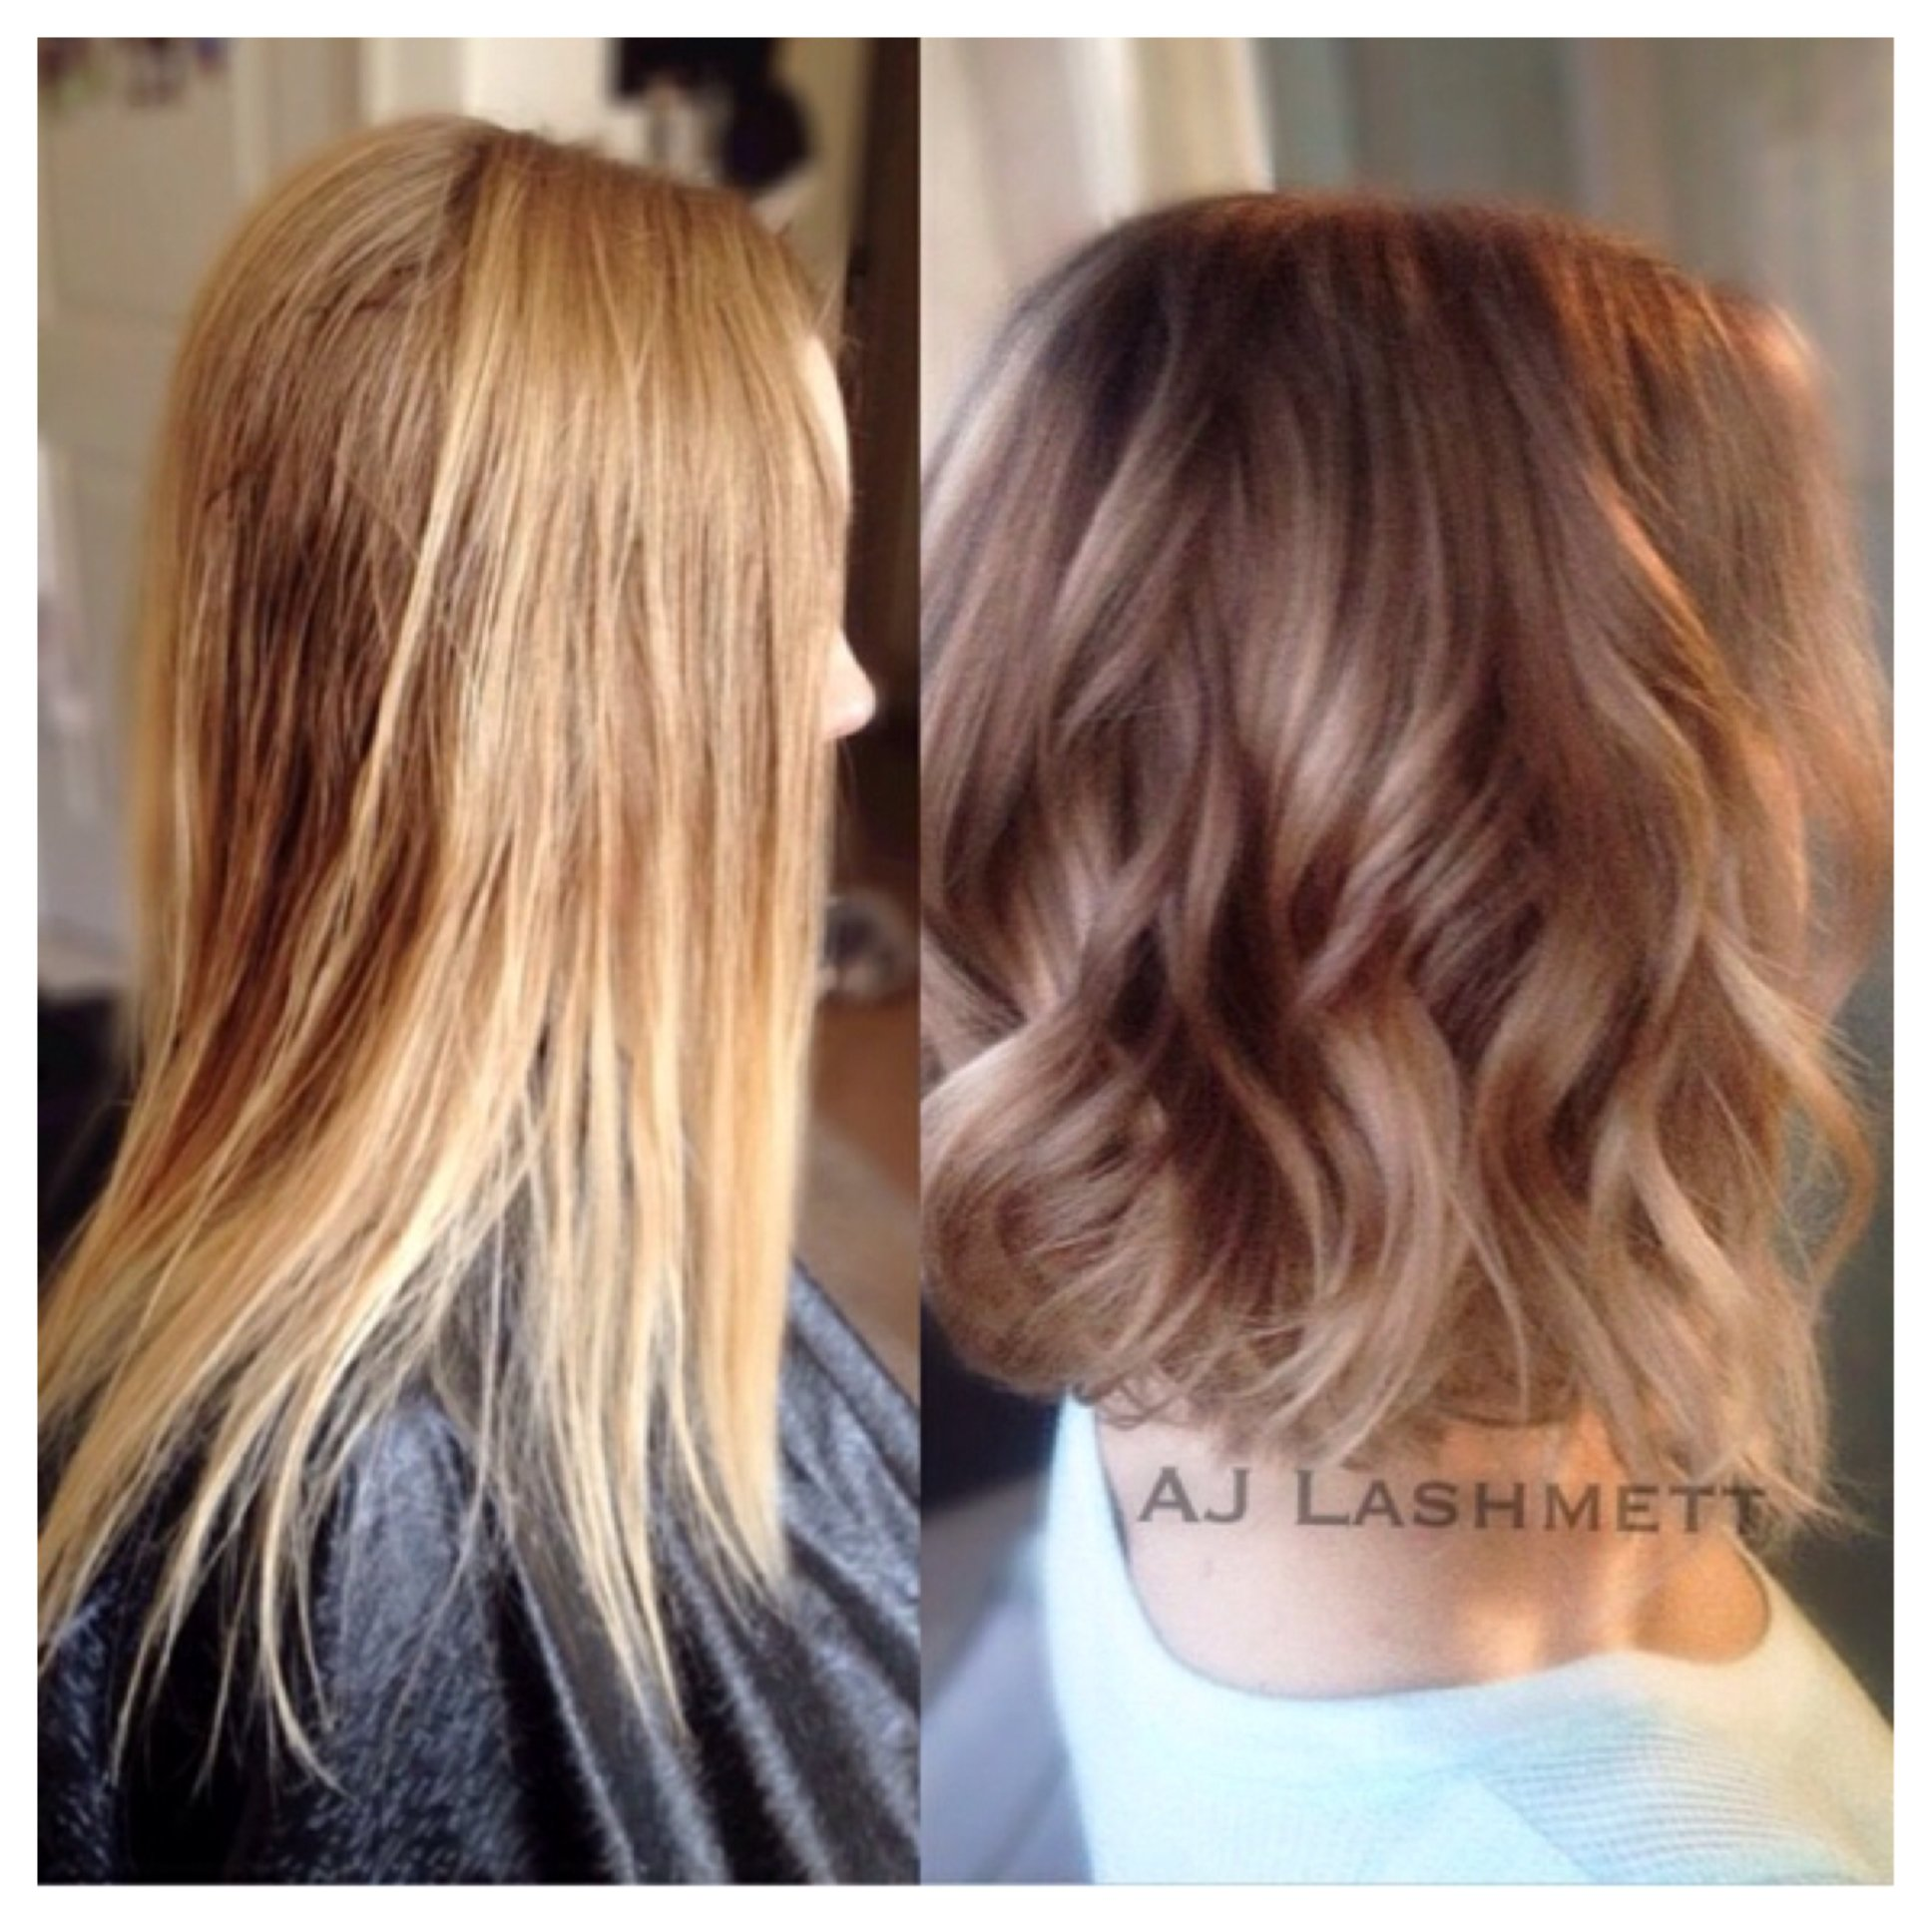 Free A New Cut And Higher Contrast Color Hair Color Modern Wallpaper